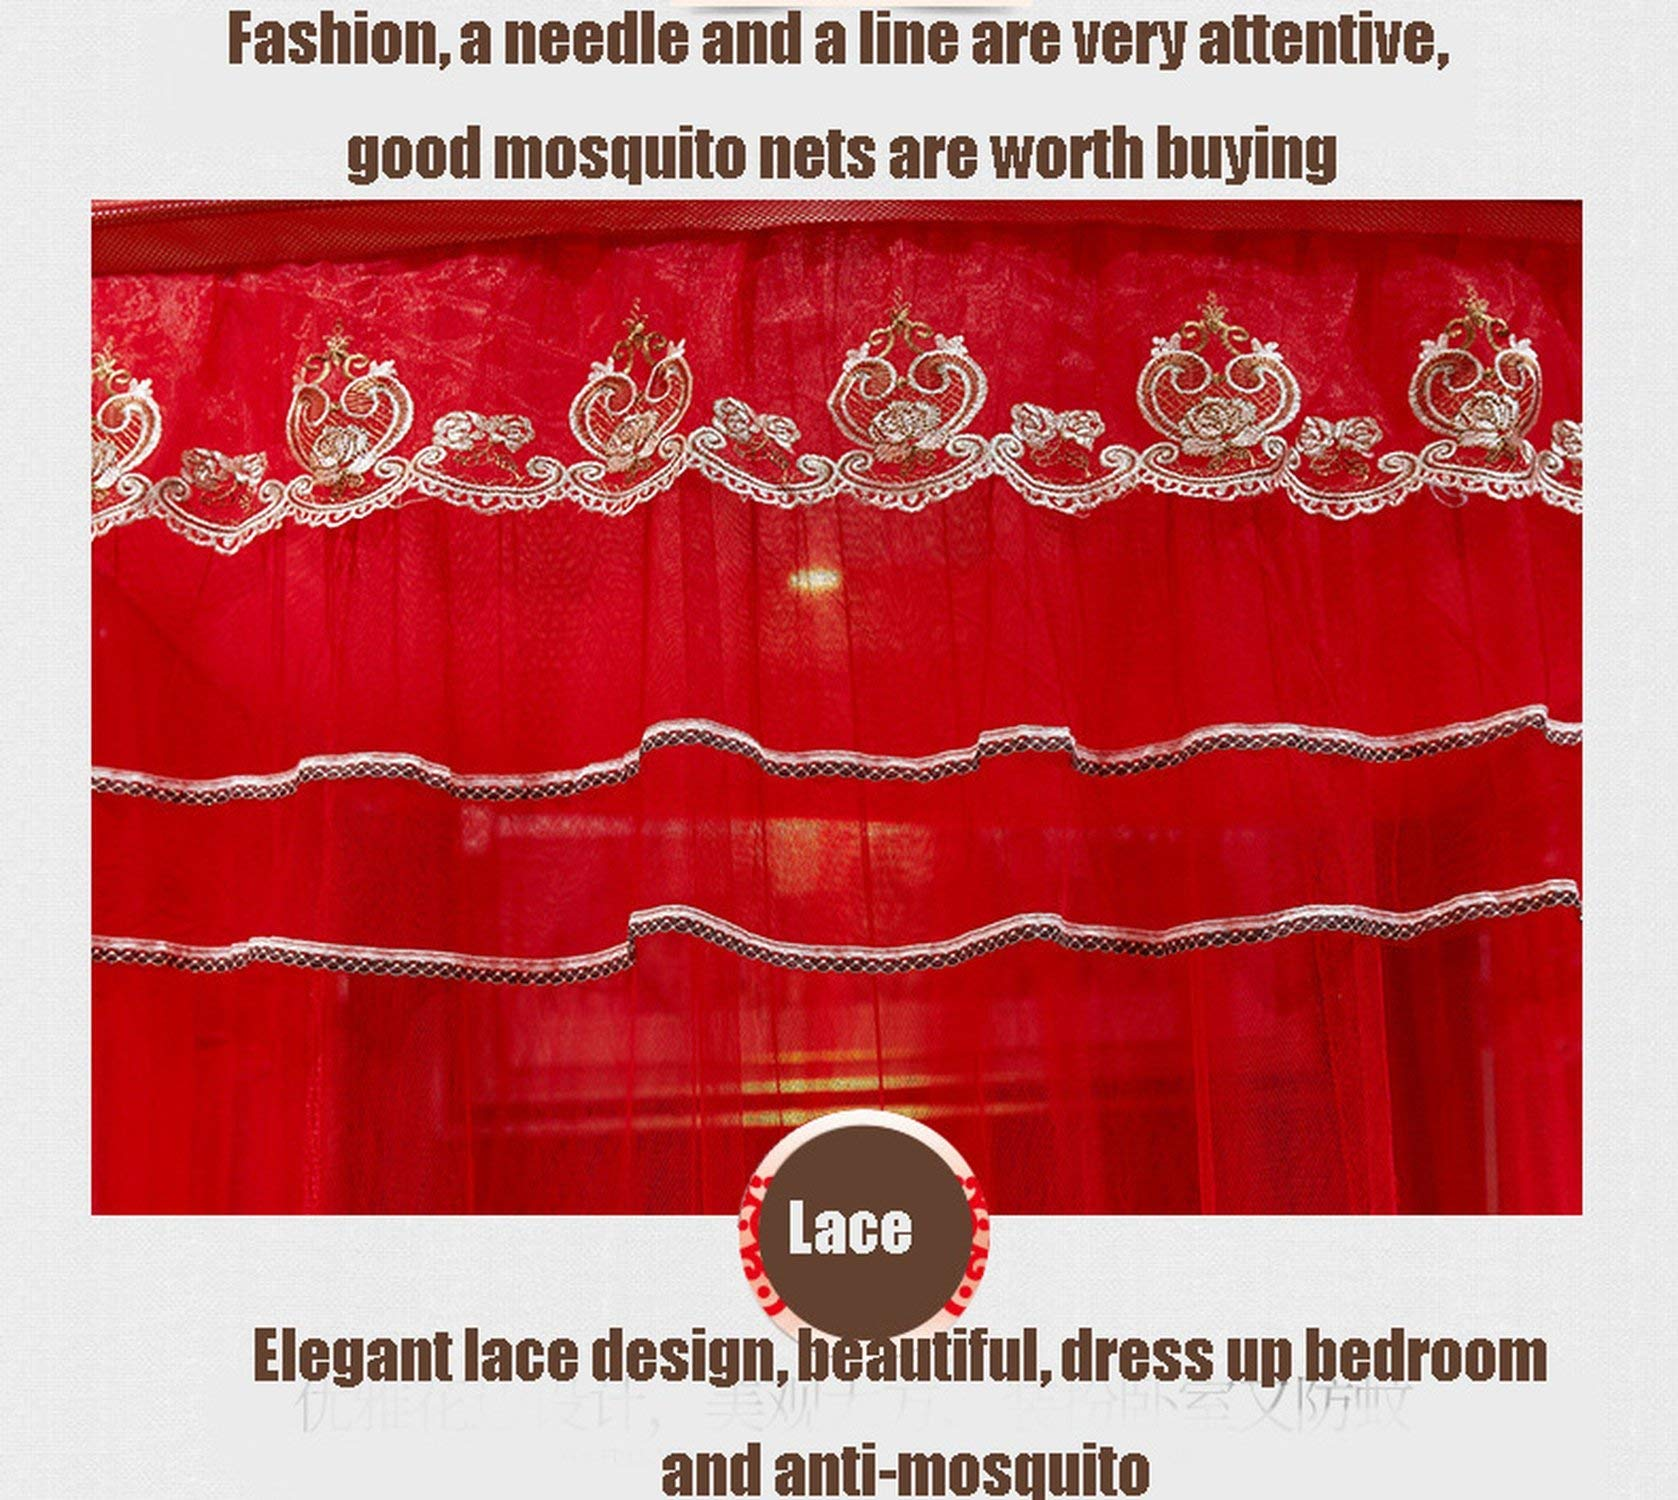 Fishing Rod Retractable Mosquito Net Multi Size Wedding Lace Mosquito Net 50D Encryption Soft Yarn Nice Bed Decor,Red,1.5Mwx2Mlx2.1Mh by special shine-shop mosquito net (Image #5)